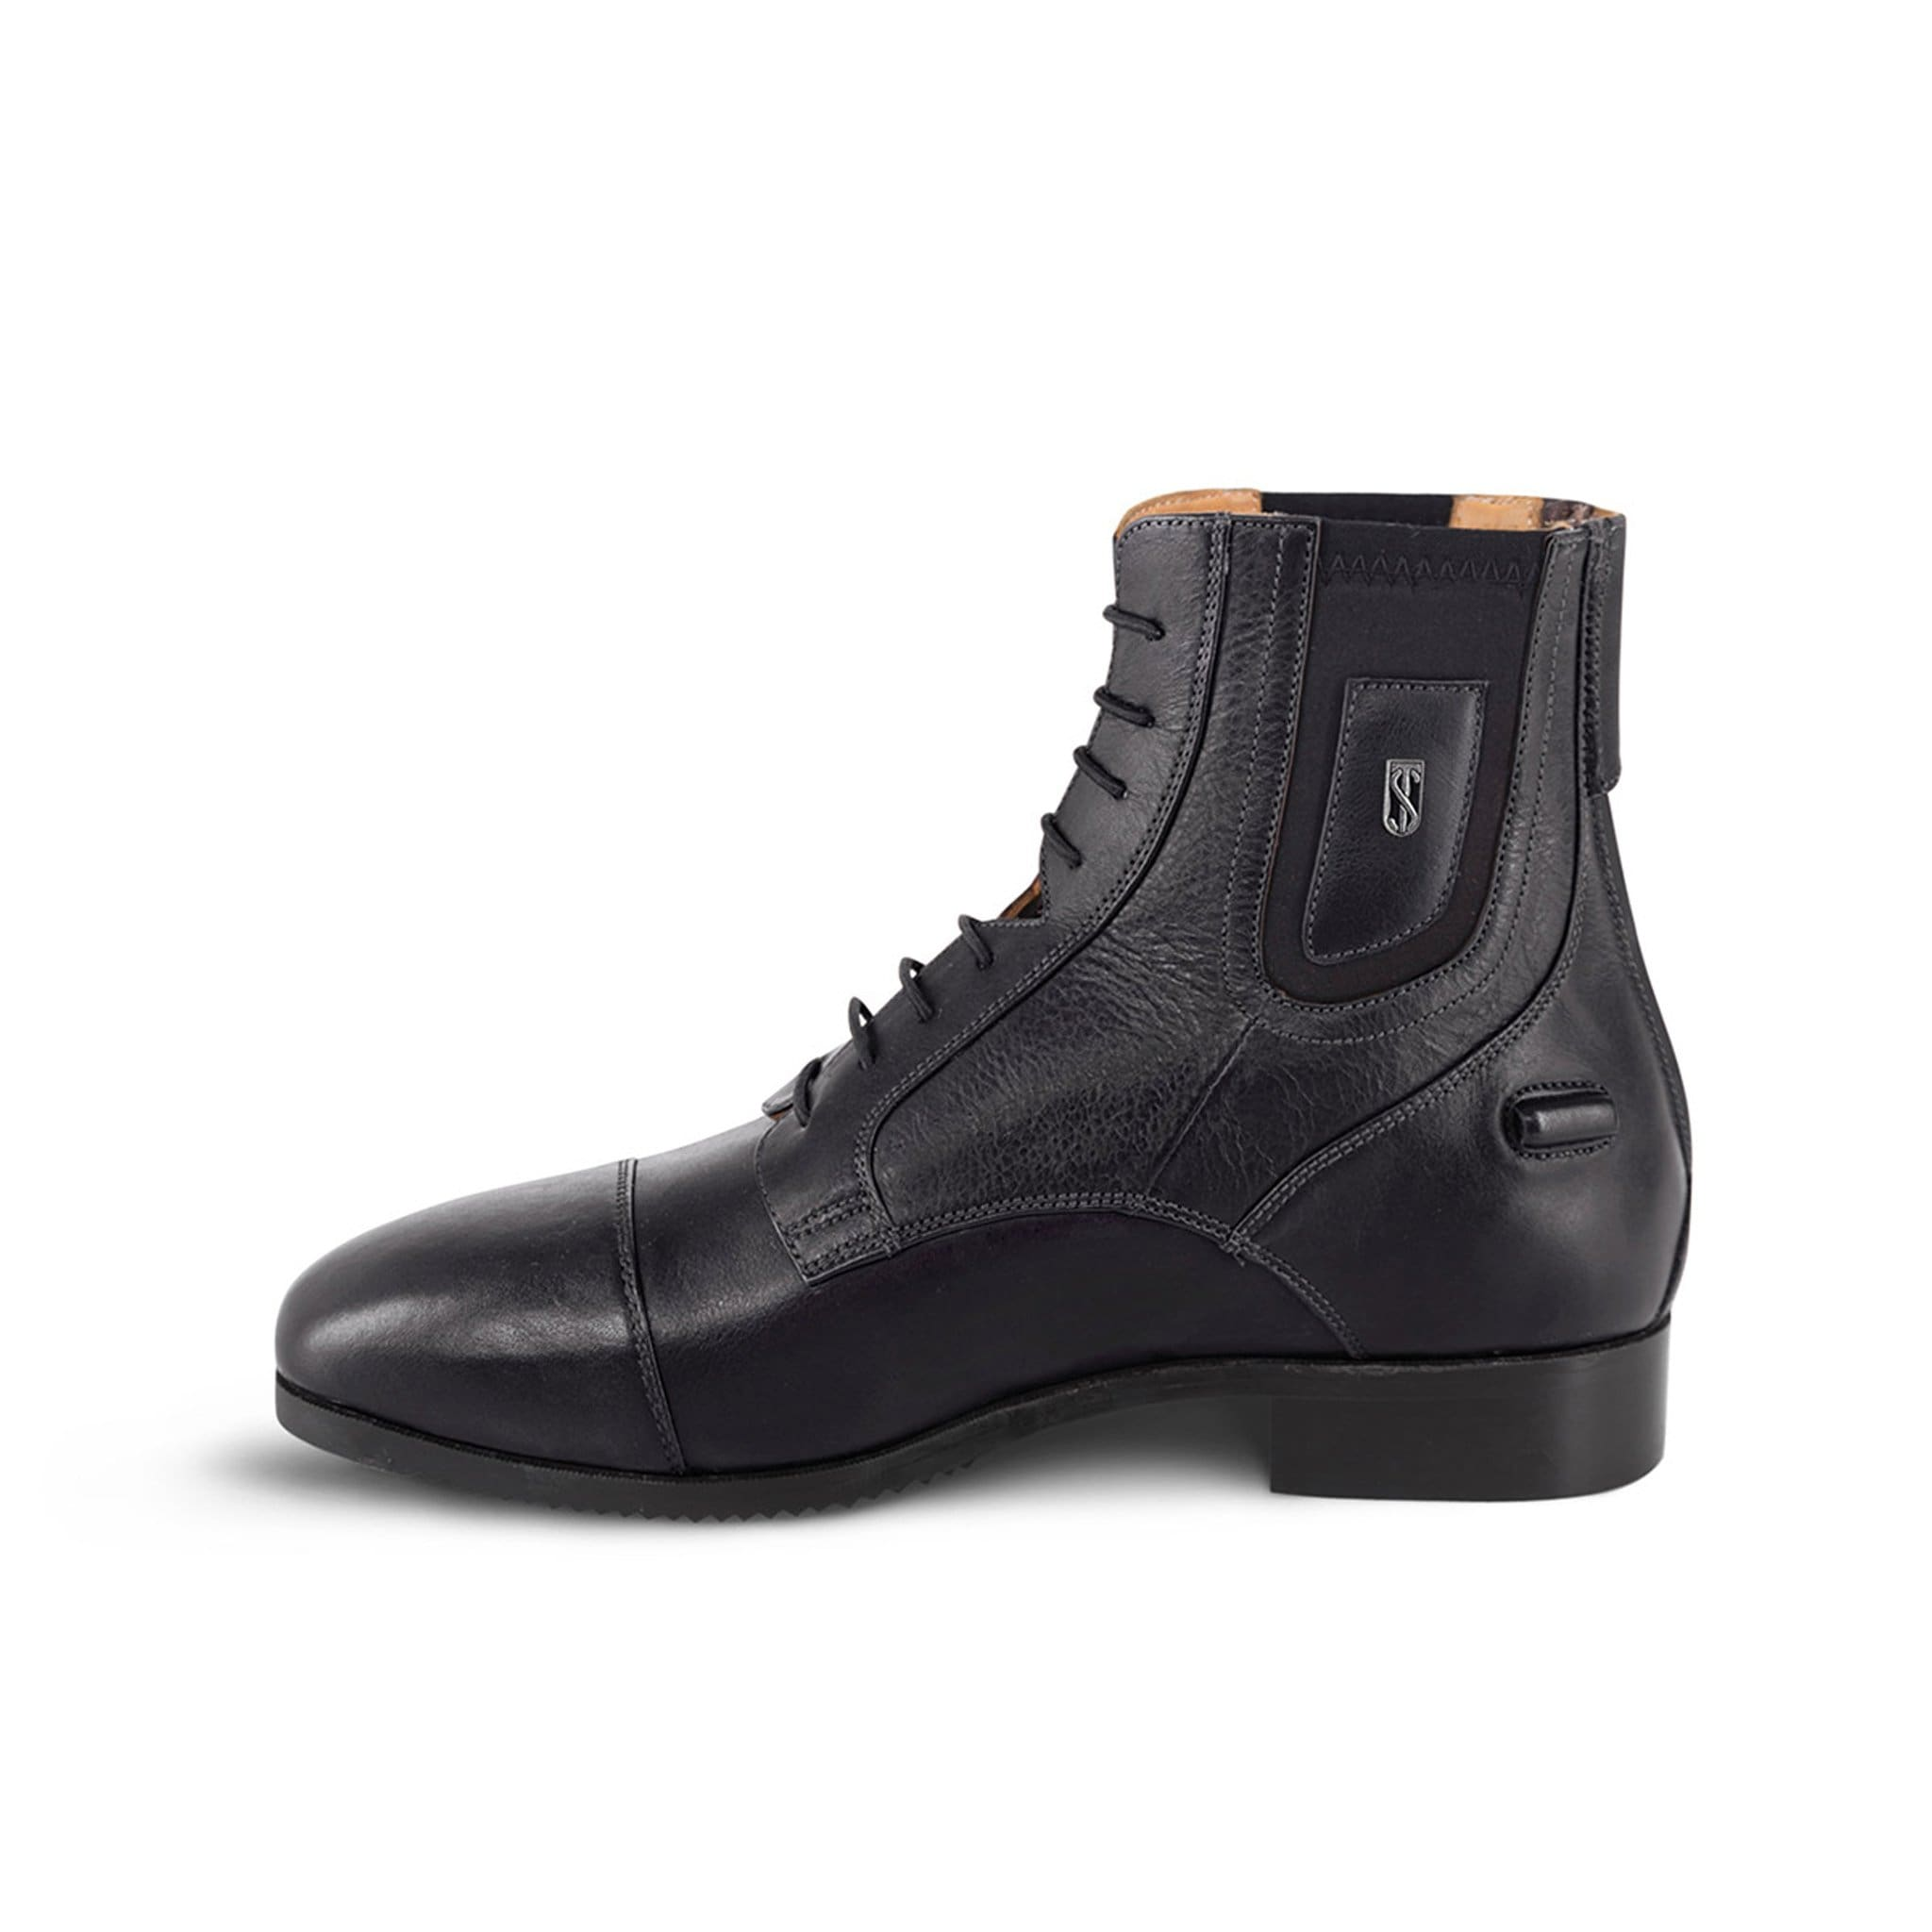 Tredstep Medici II Paddock Boot with Lace and Rear Zip in Black